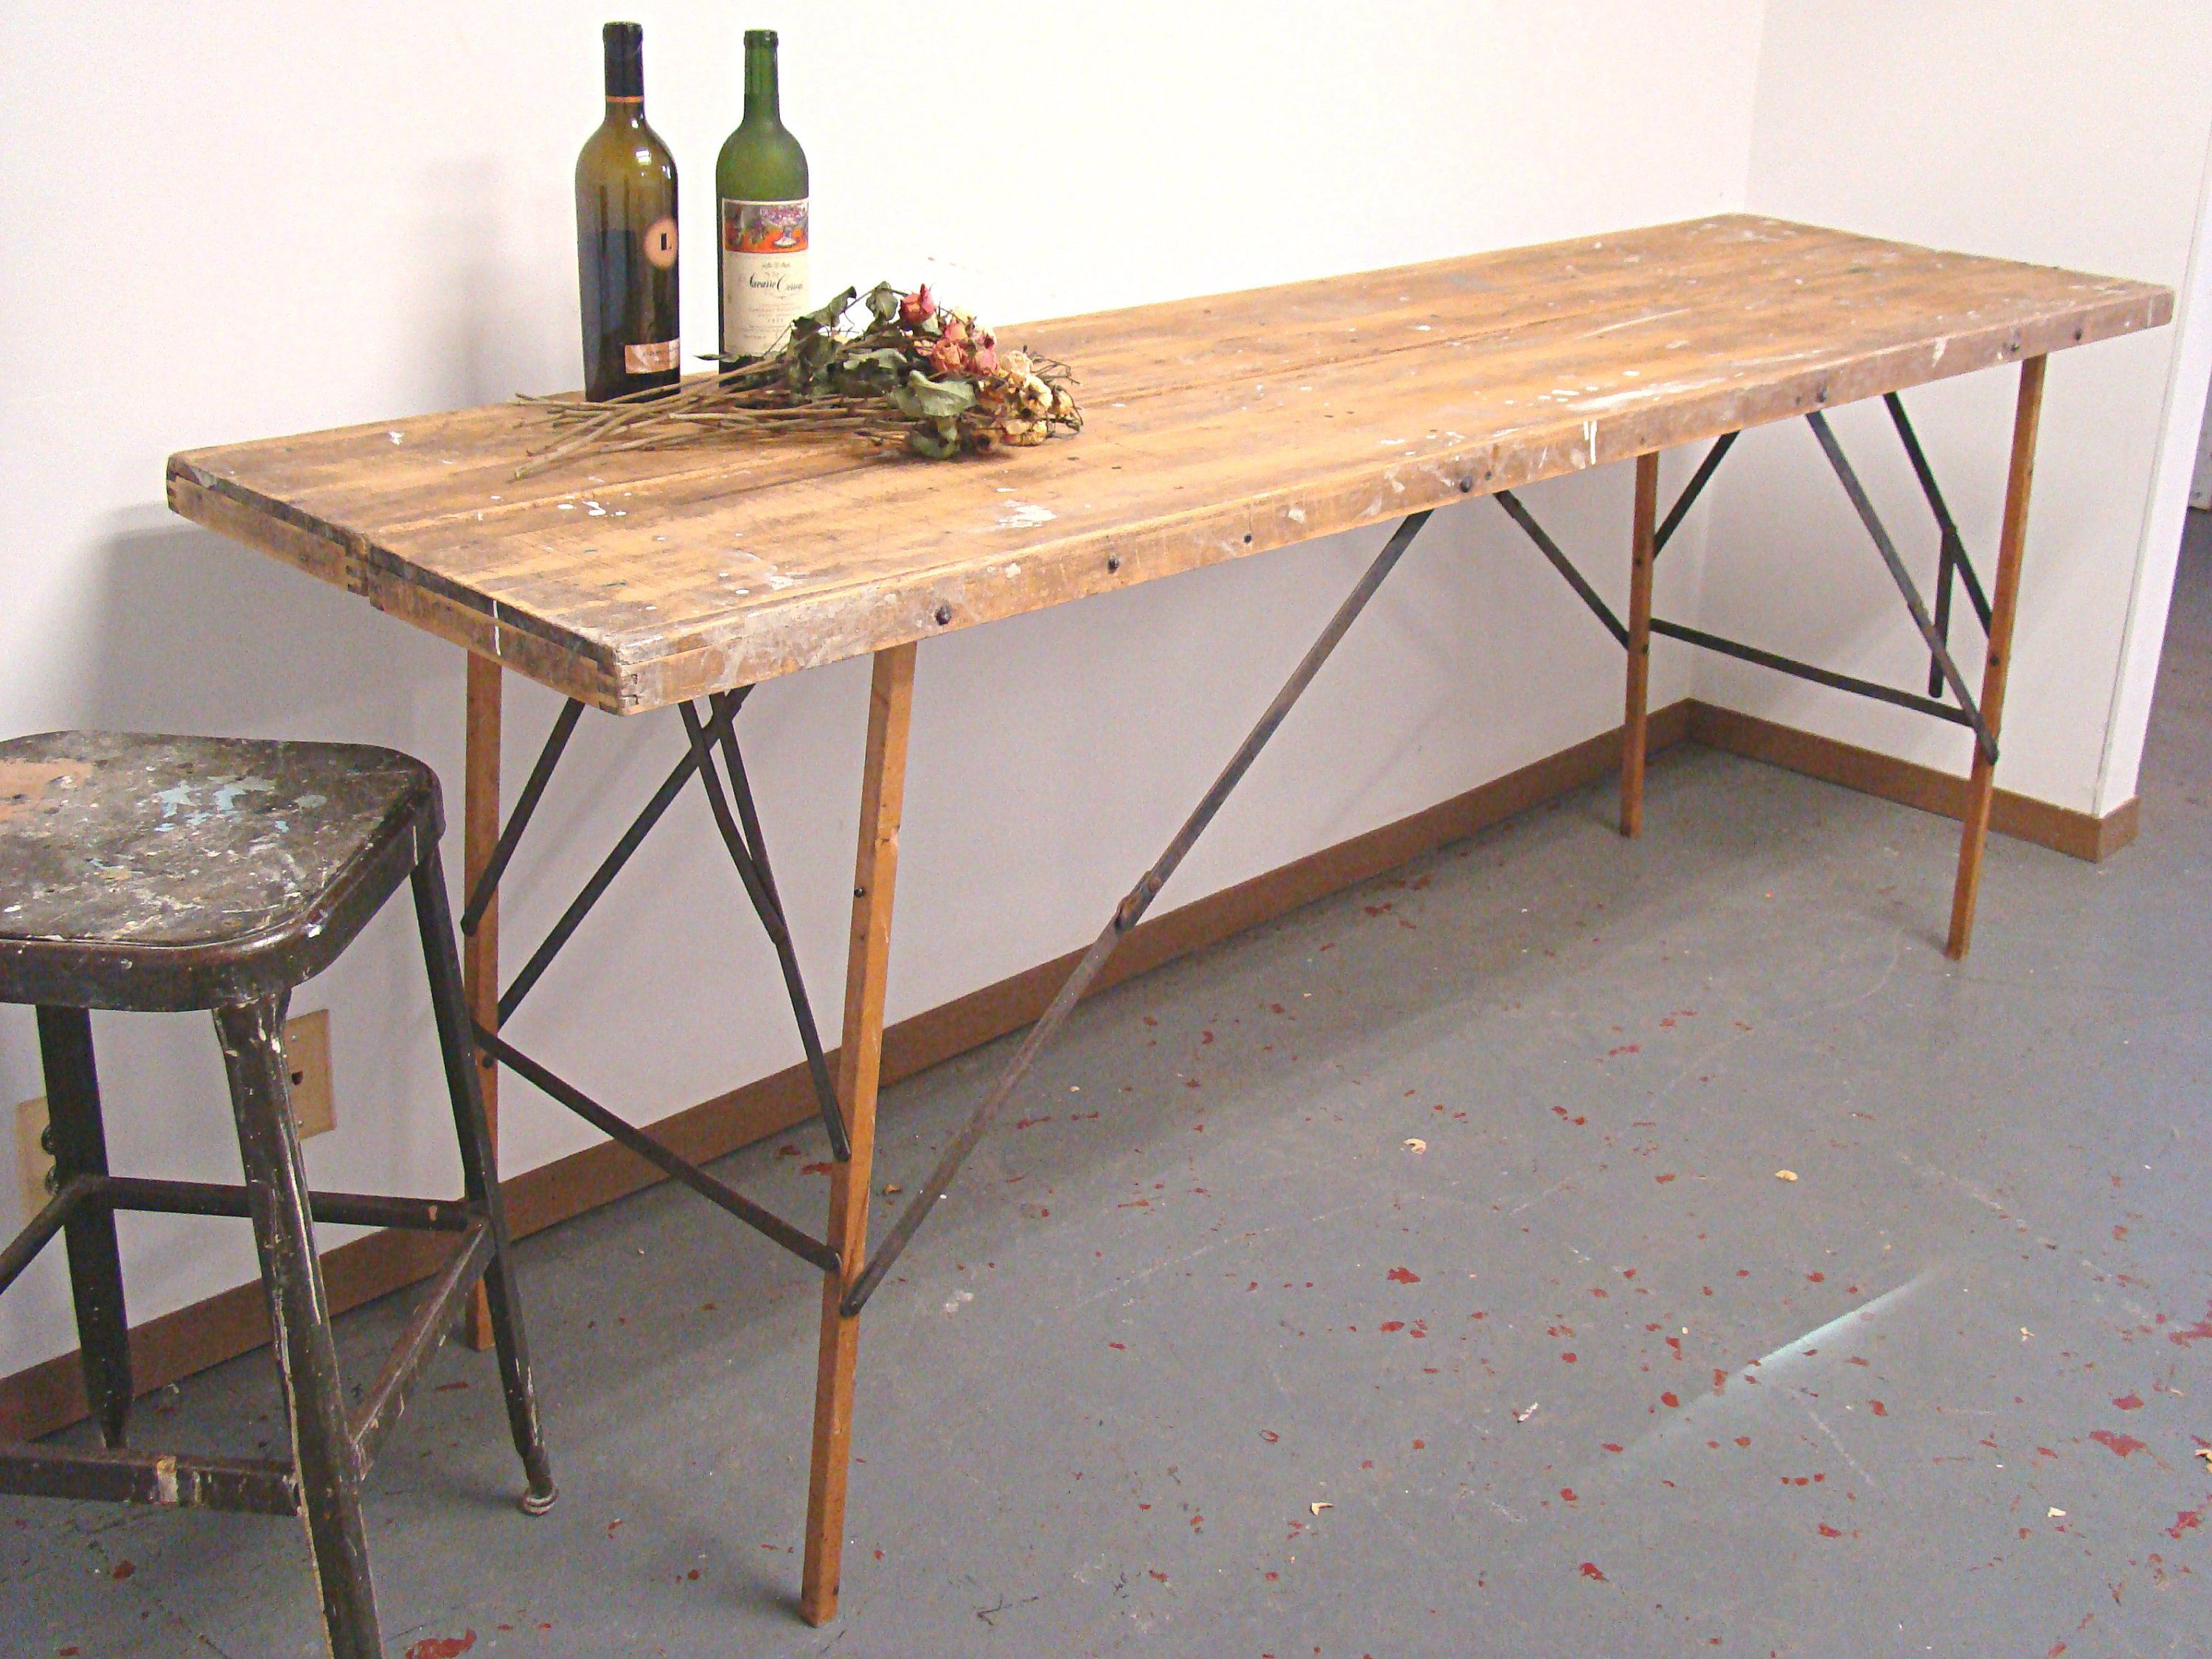 Vintage Wallpaper Table Folding Table Wood Work Surface Farmhouse Decor Industrial Decor Workbench Long Wood Folding Table Bar Table Diy Folding Table